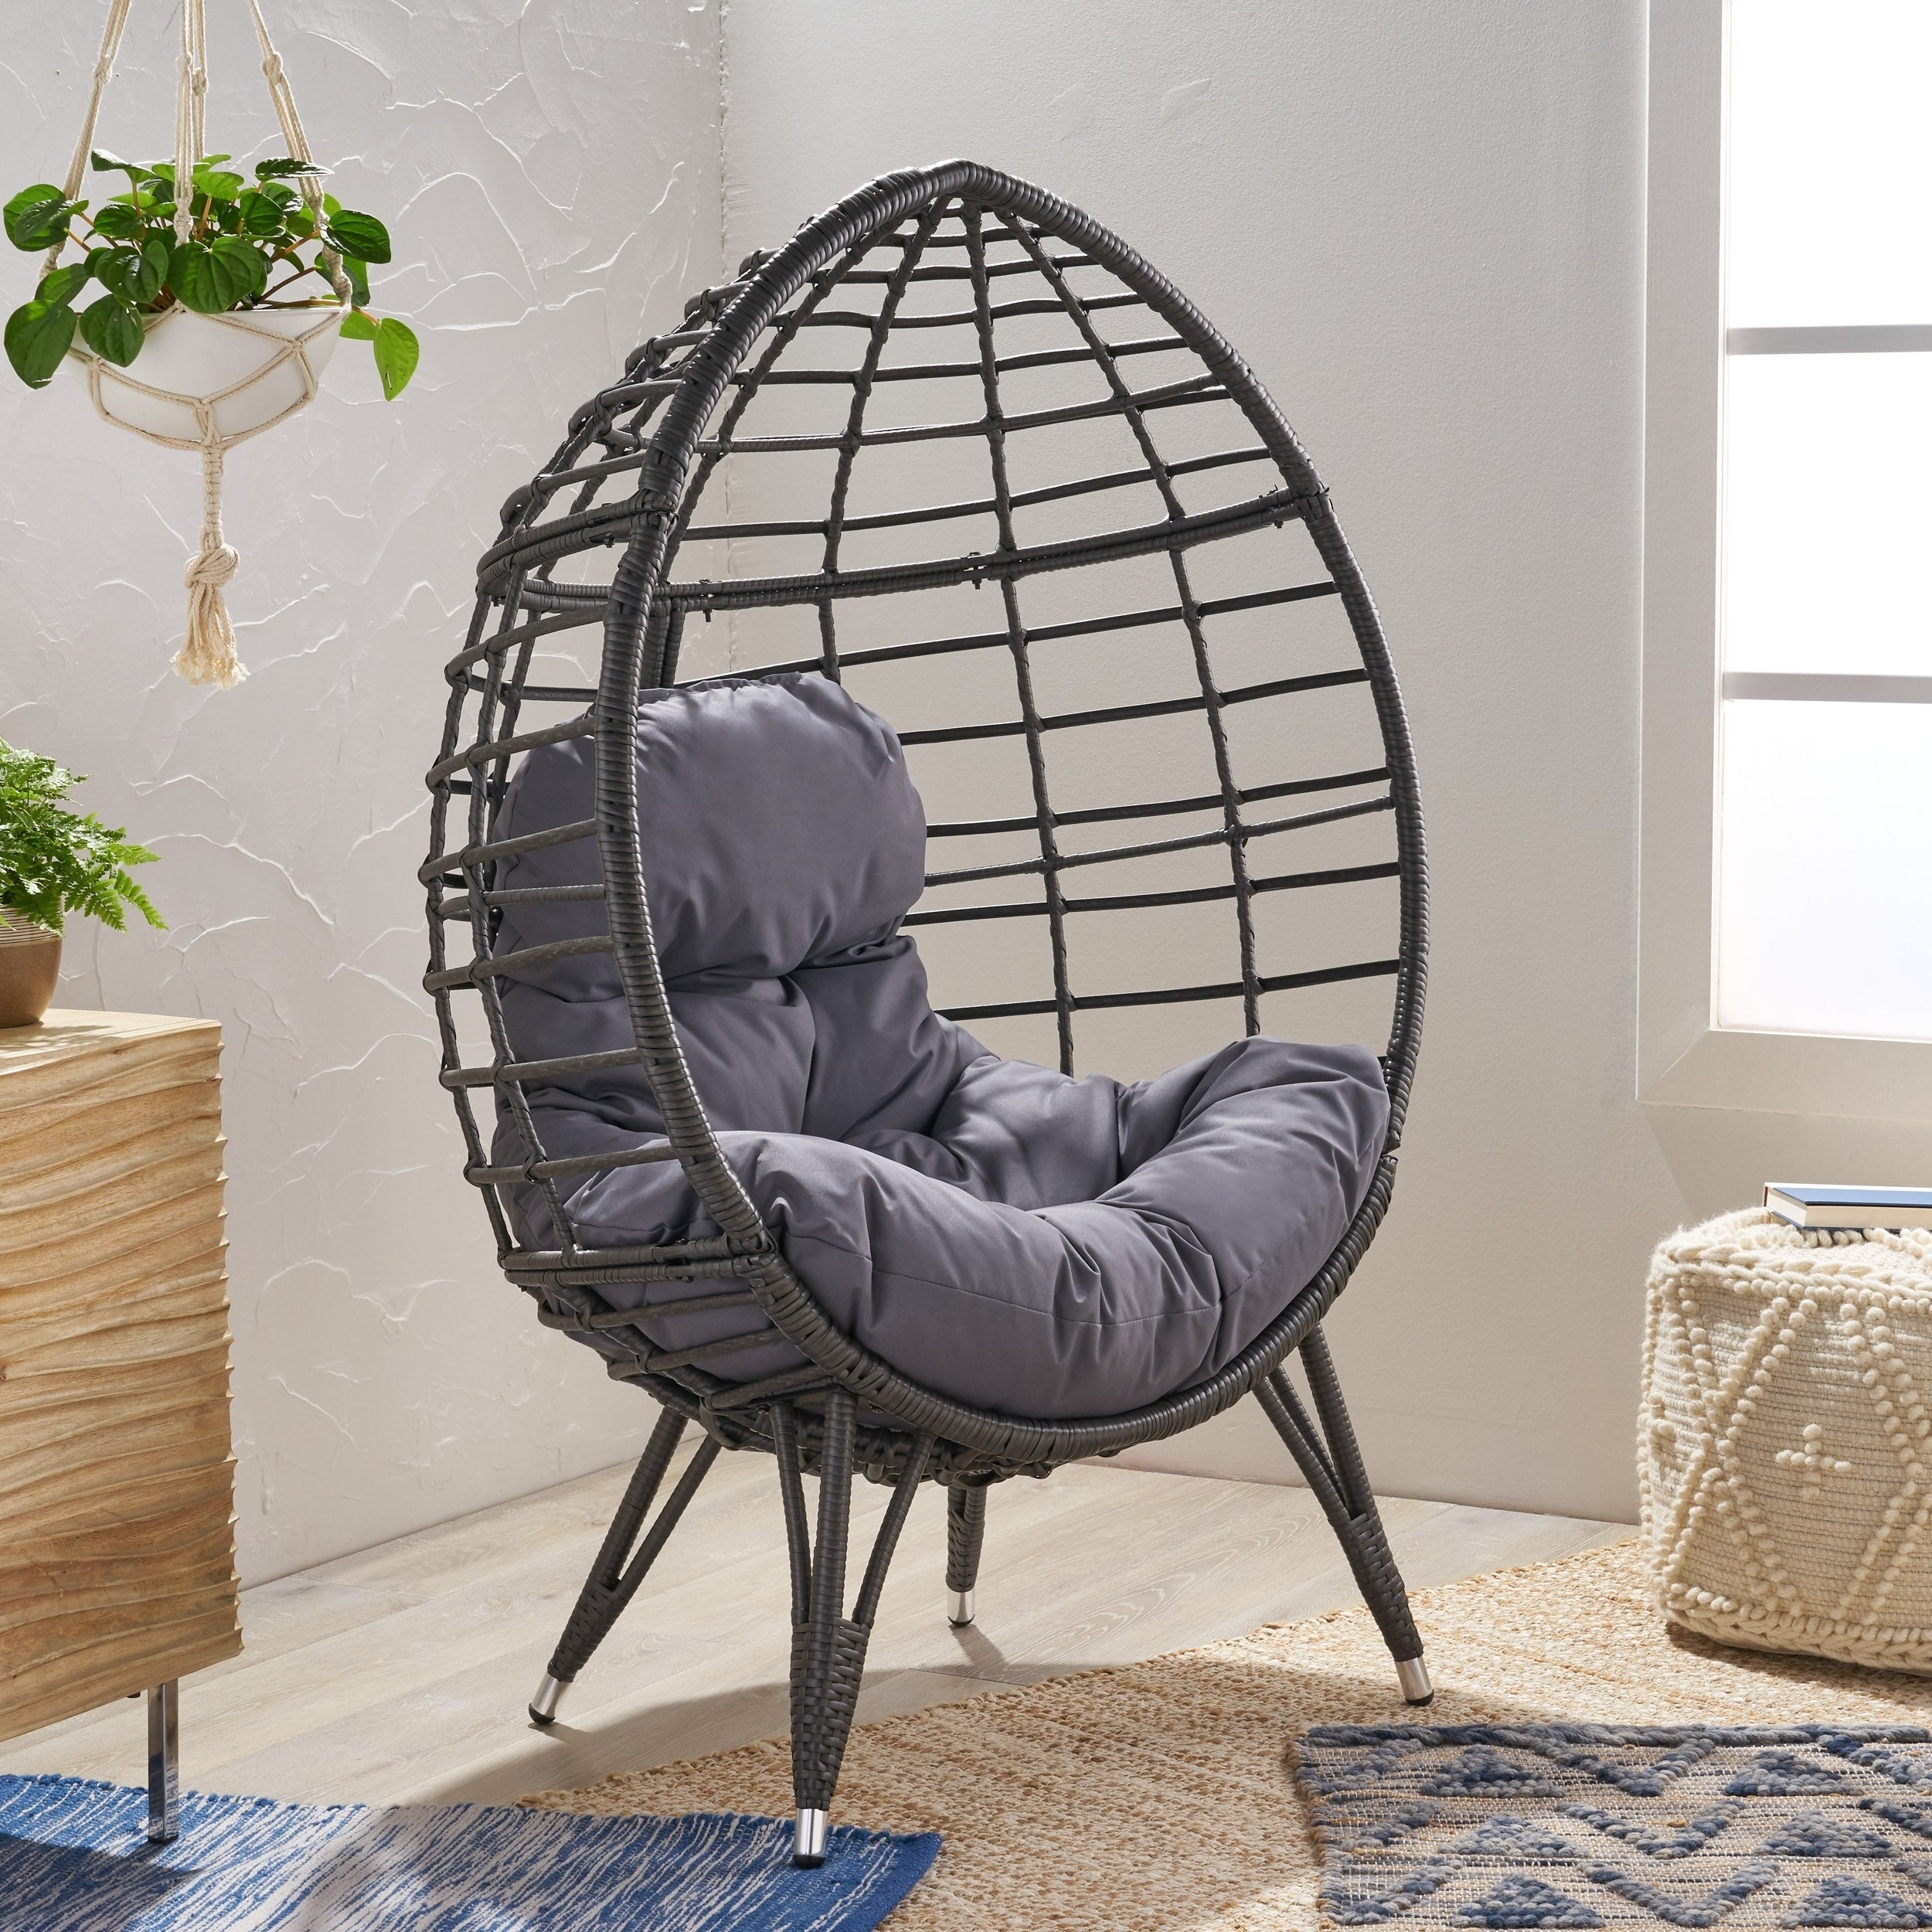 Savin Indoor Wicker Teardrop Chair With Cushion By Christopher Knight Home Overstock 29816676